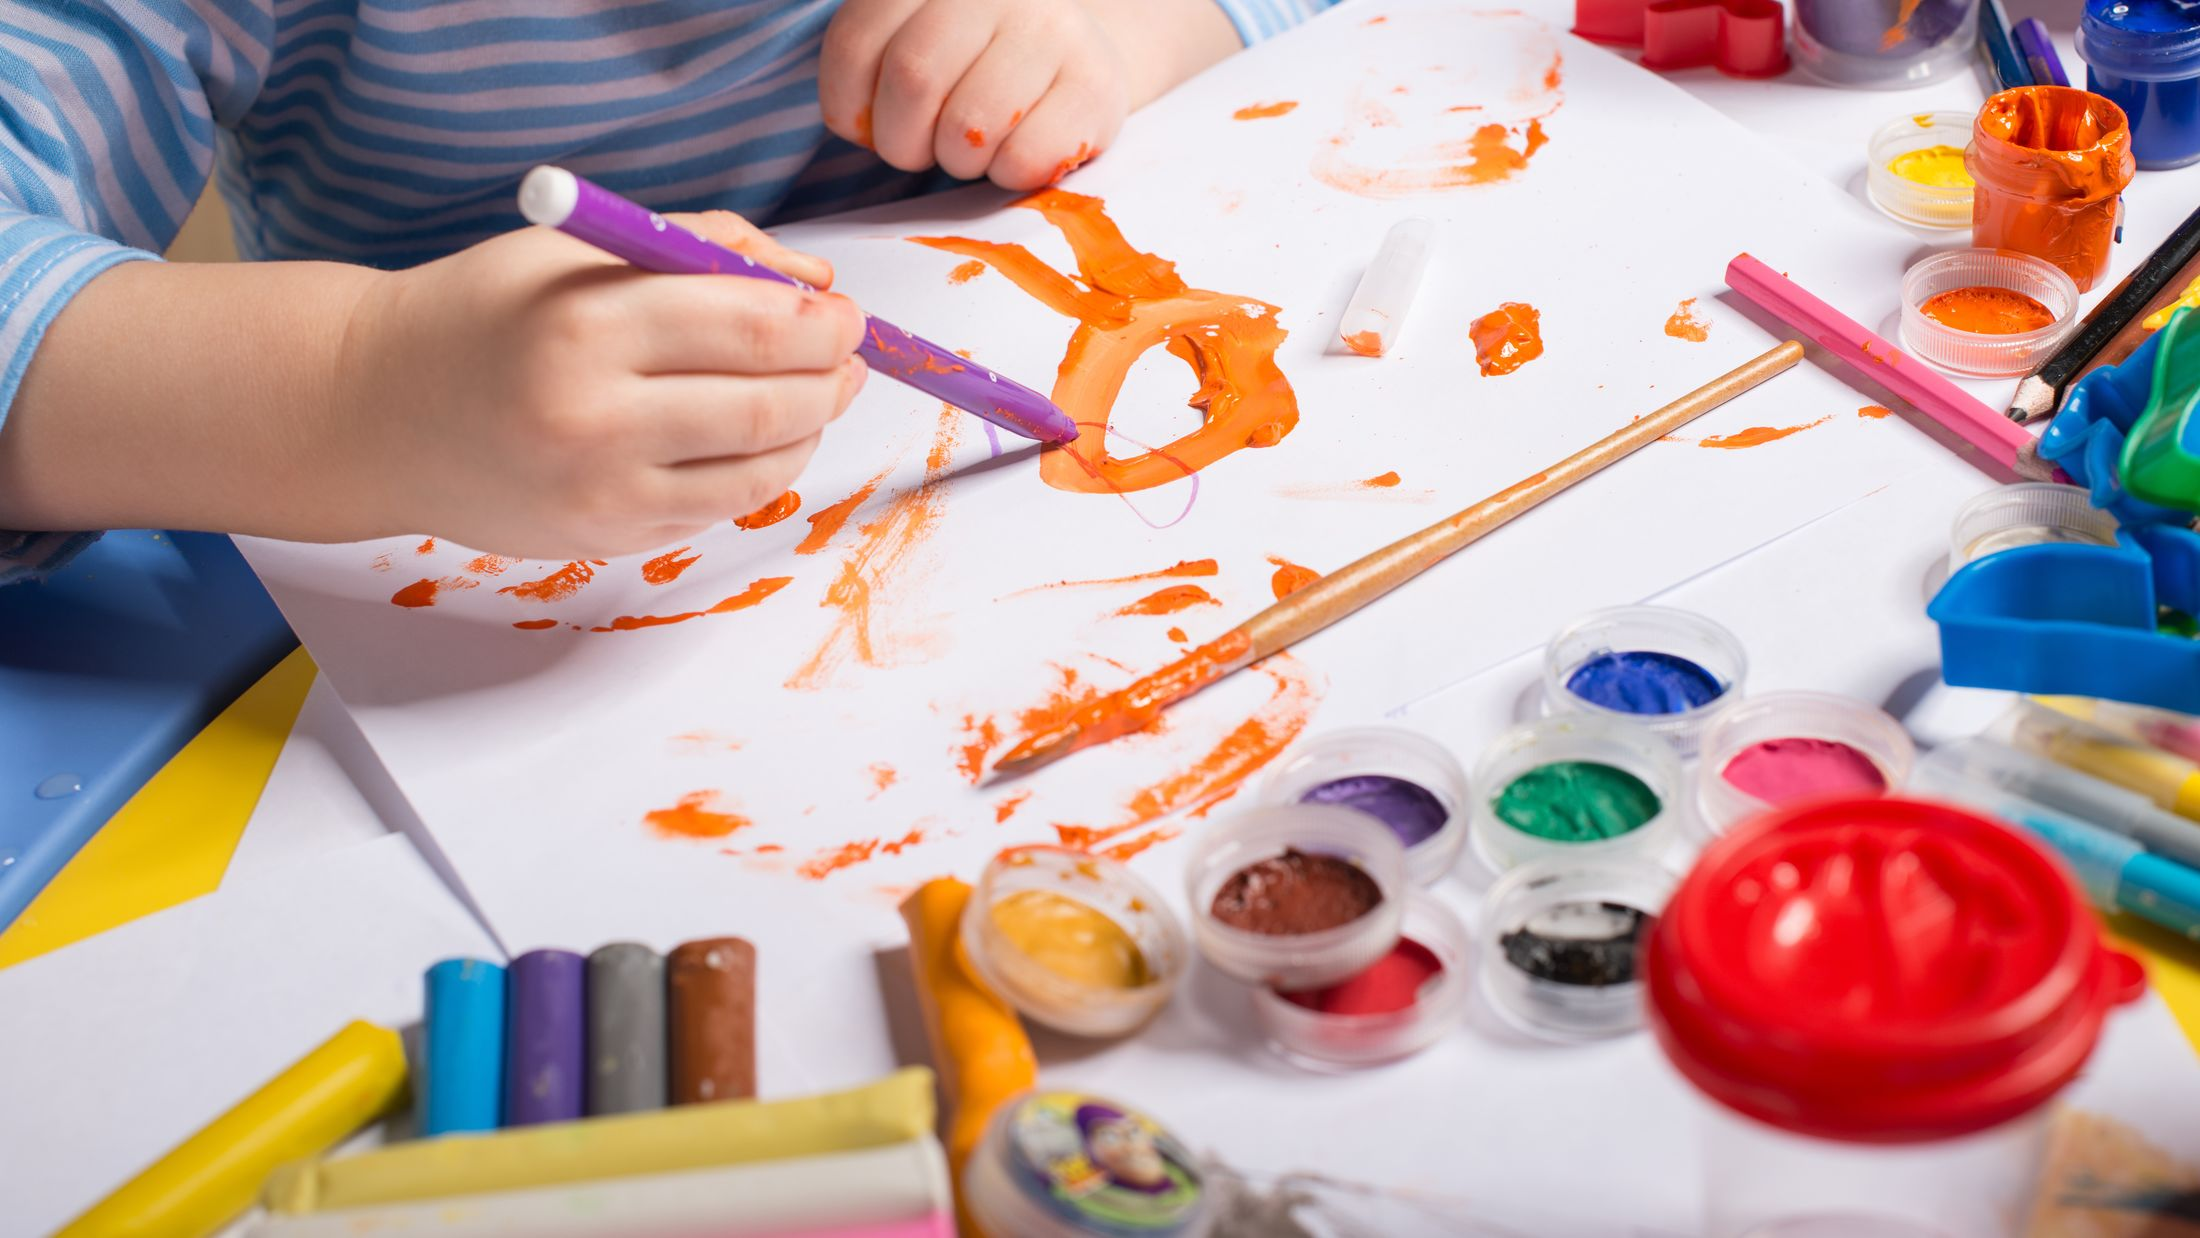 Hands of painting little boy and the table for creativity; Shutterstock ID 132261485; PO: Sovereign